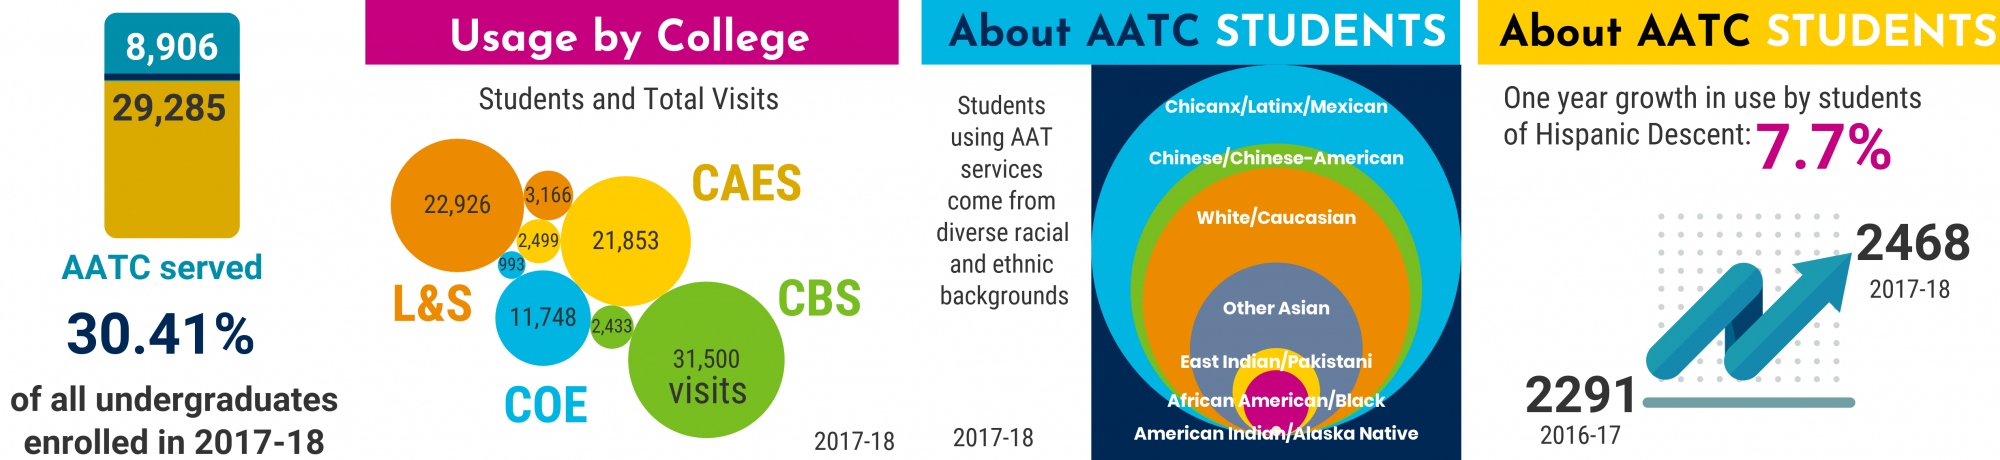 data graphics for 2017-18 usage of AATC services